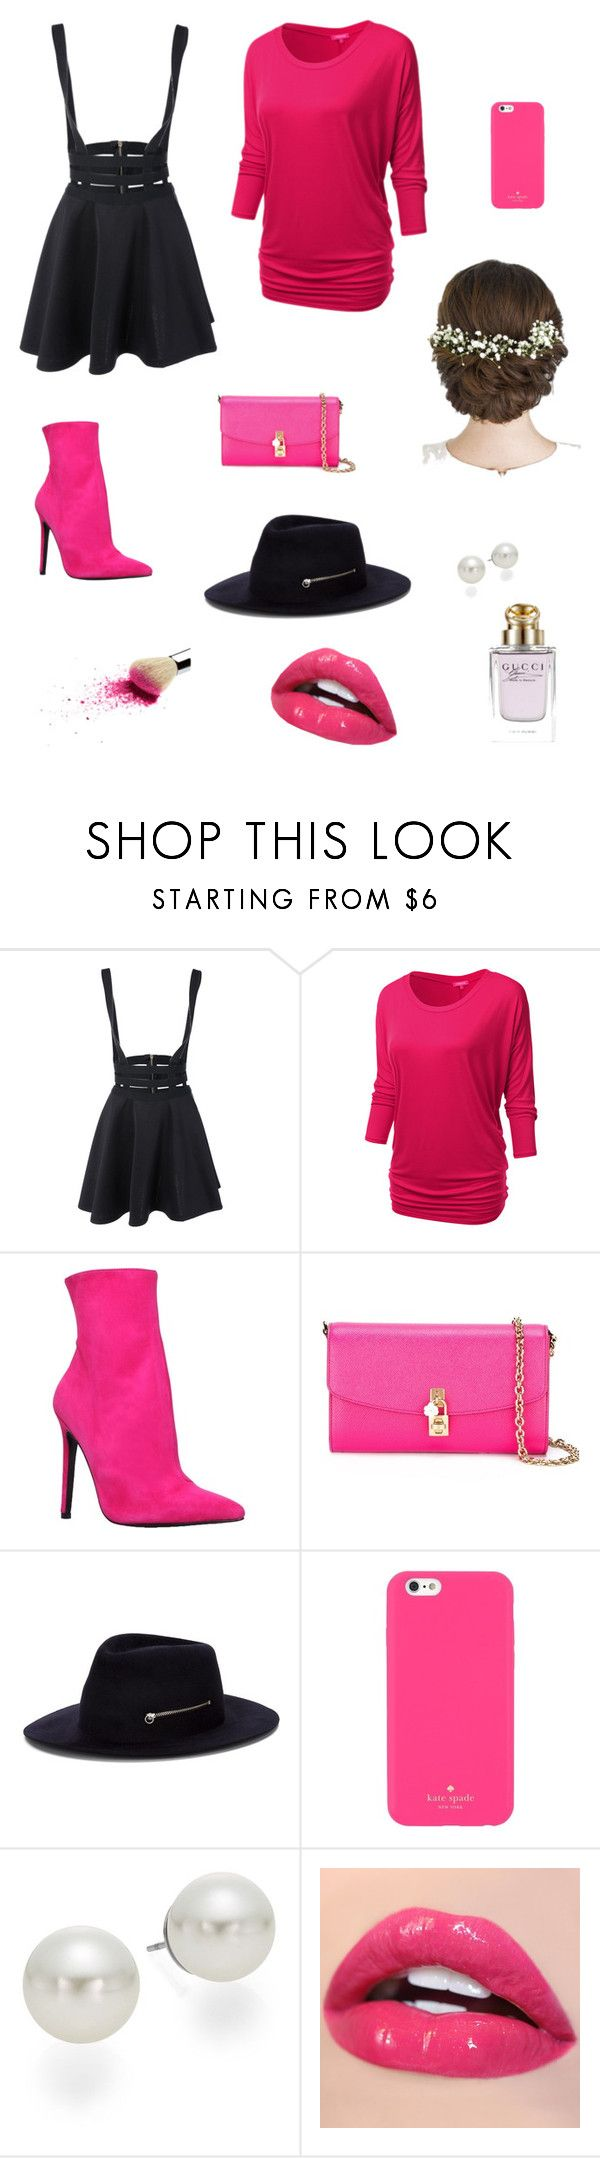 """""""Life"""" by raghad2007 ❤ liked on Polyvore featuring beauty, J.TOMSON, Carvela, Dolce&Gabbana, Larose, Kate Spade, AK Anne Klein and Gucci"""